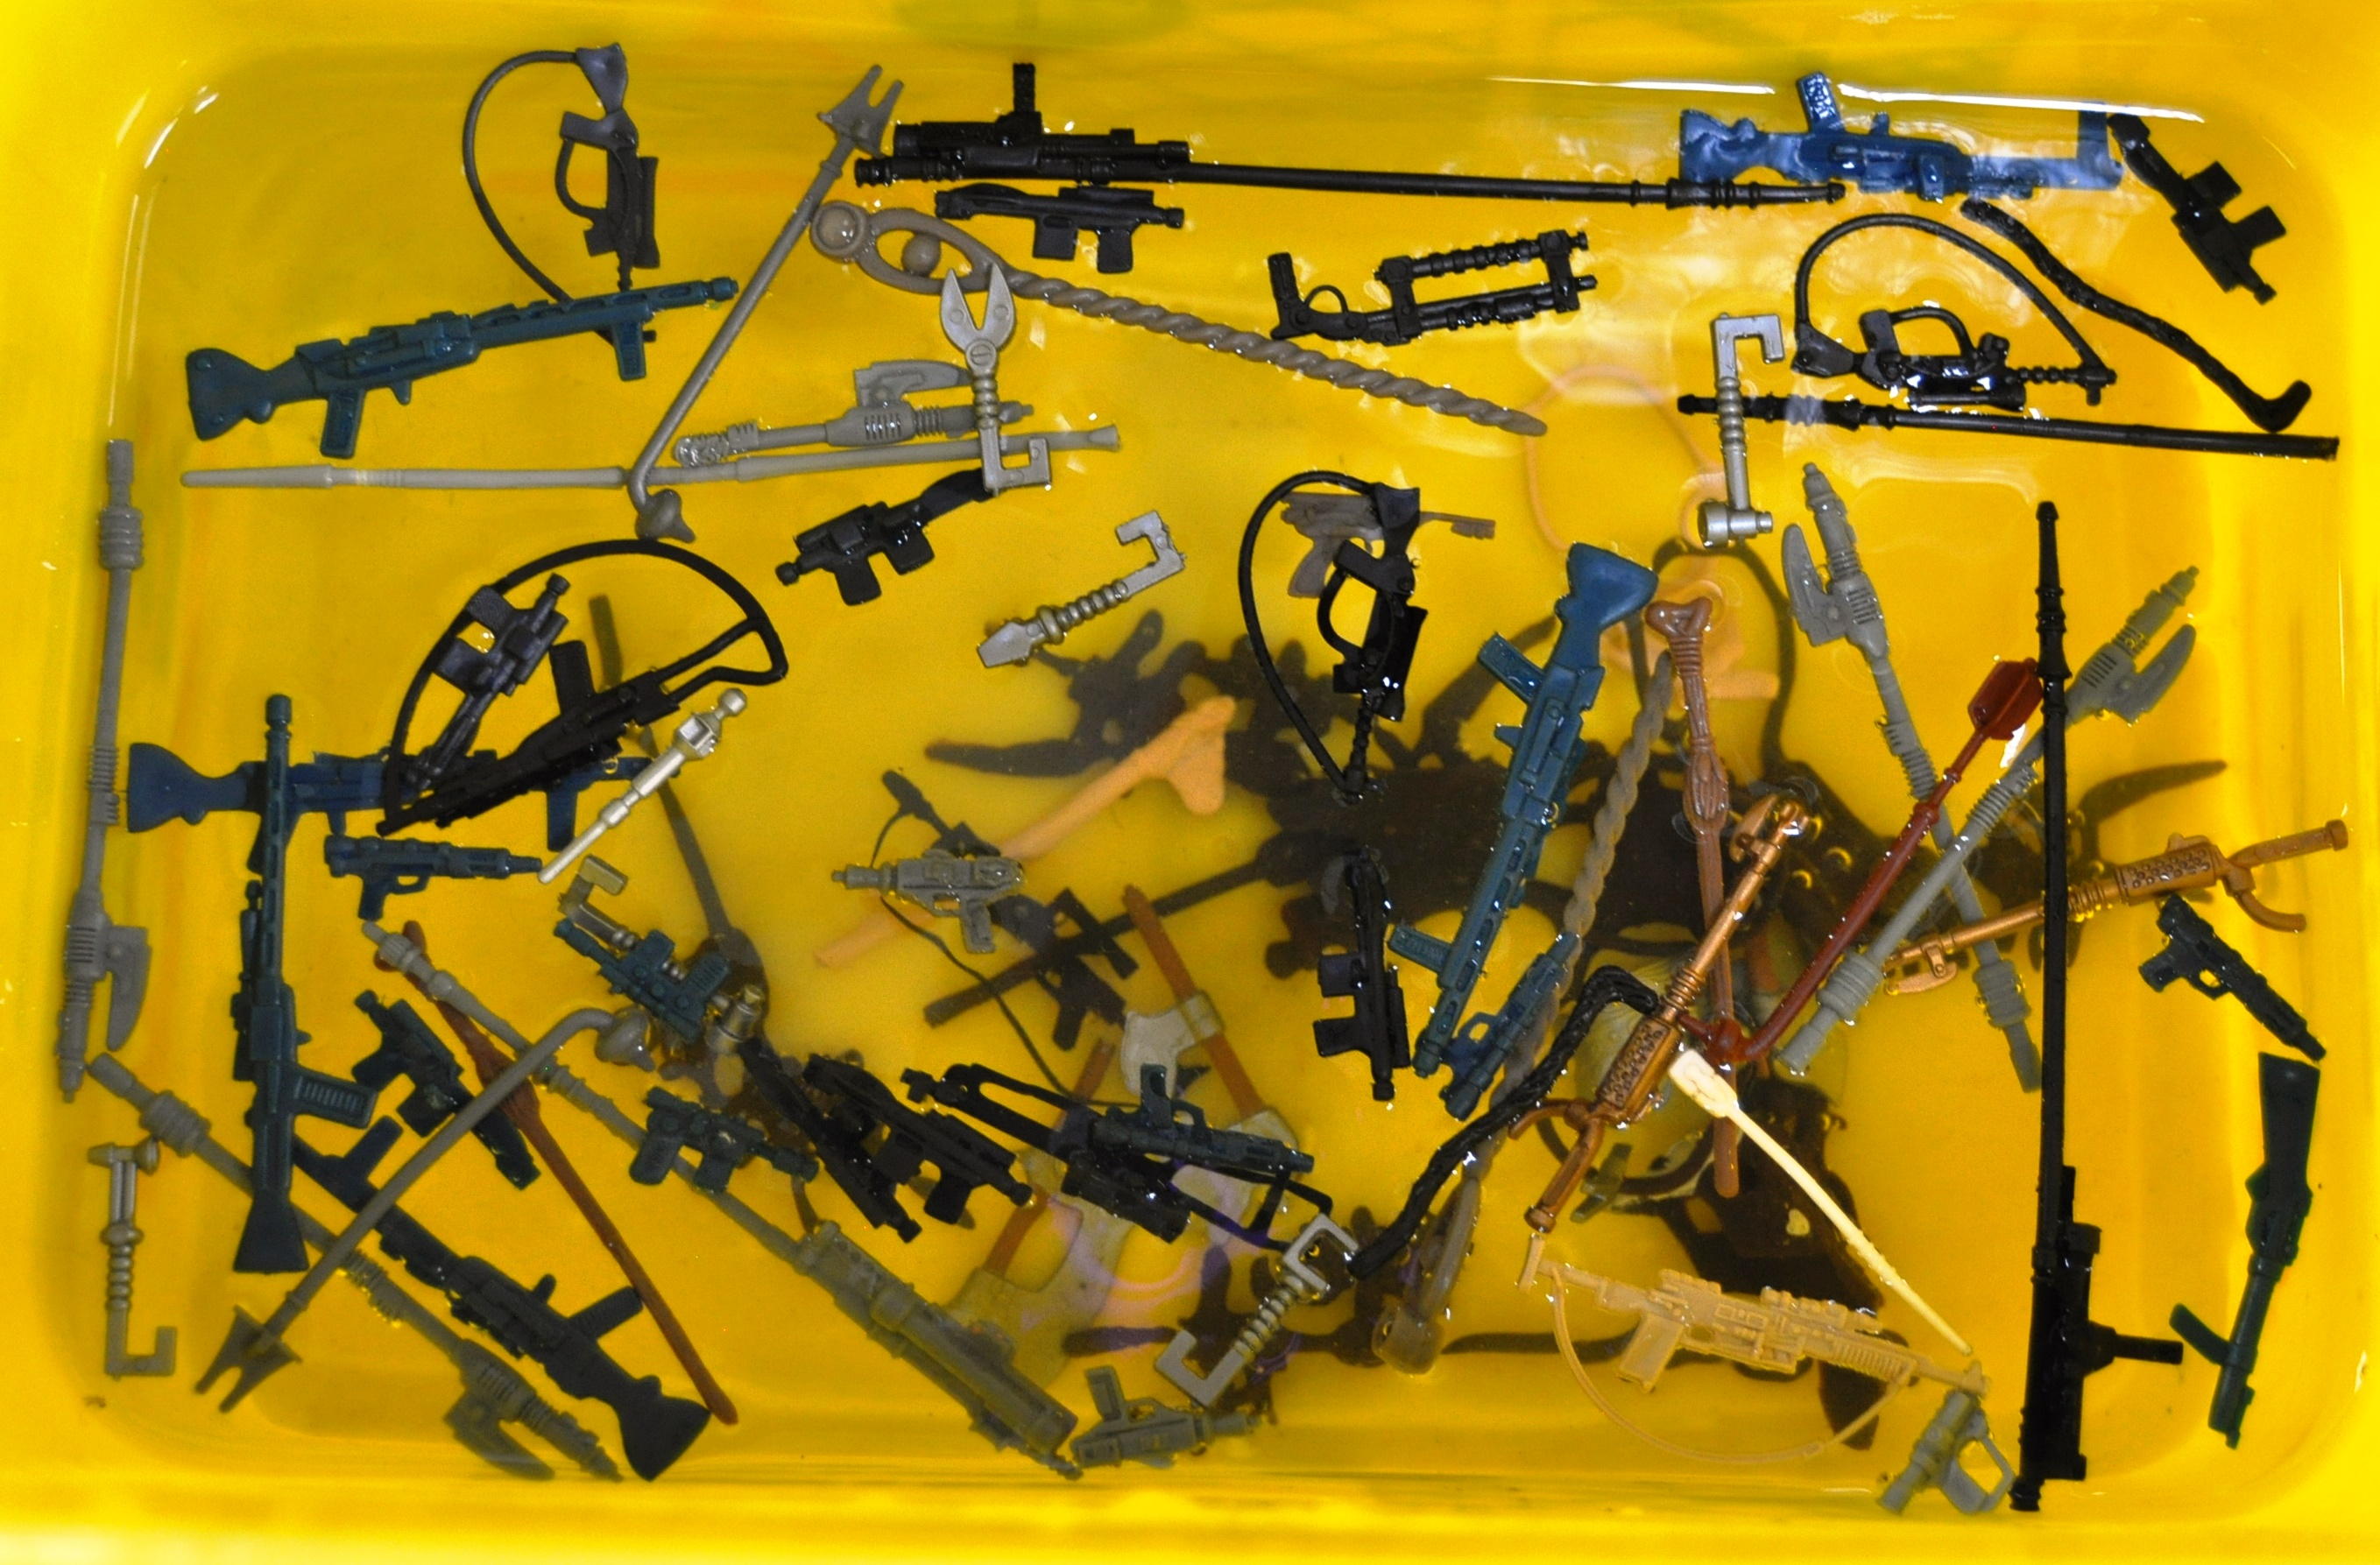 STAR WARS - LARGE COLLECTION OF ORIGINAL VINTAGE WEAPONS & ACCESSORIES. - Image 11 of 11